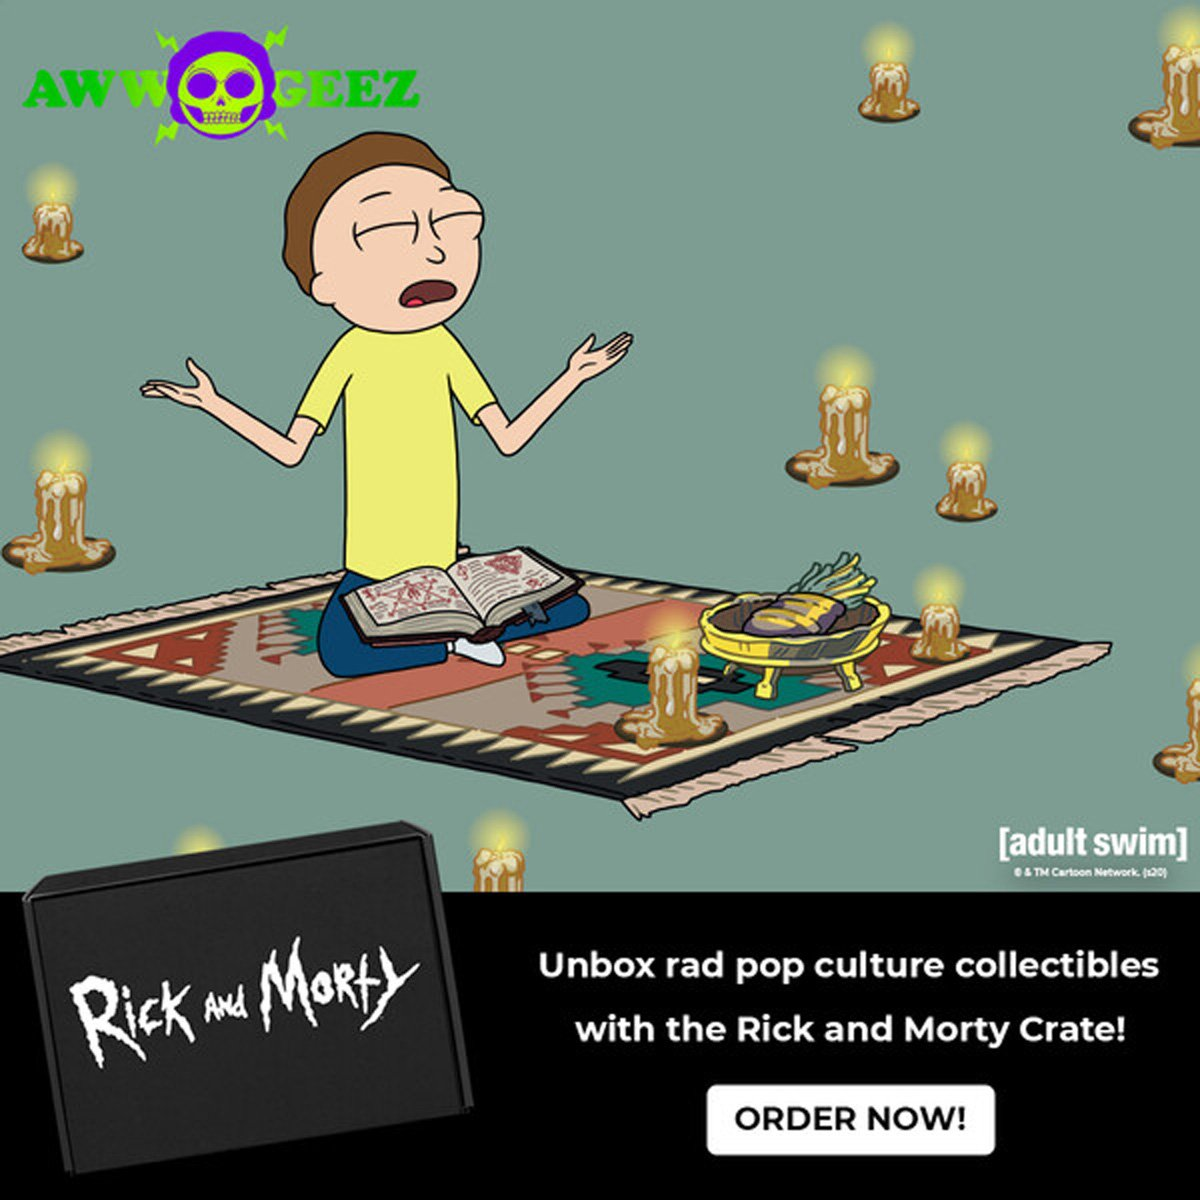 rick-and-morty-aww-geez2